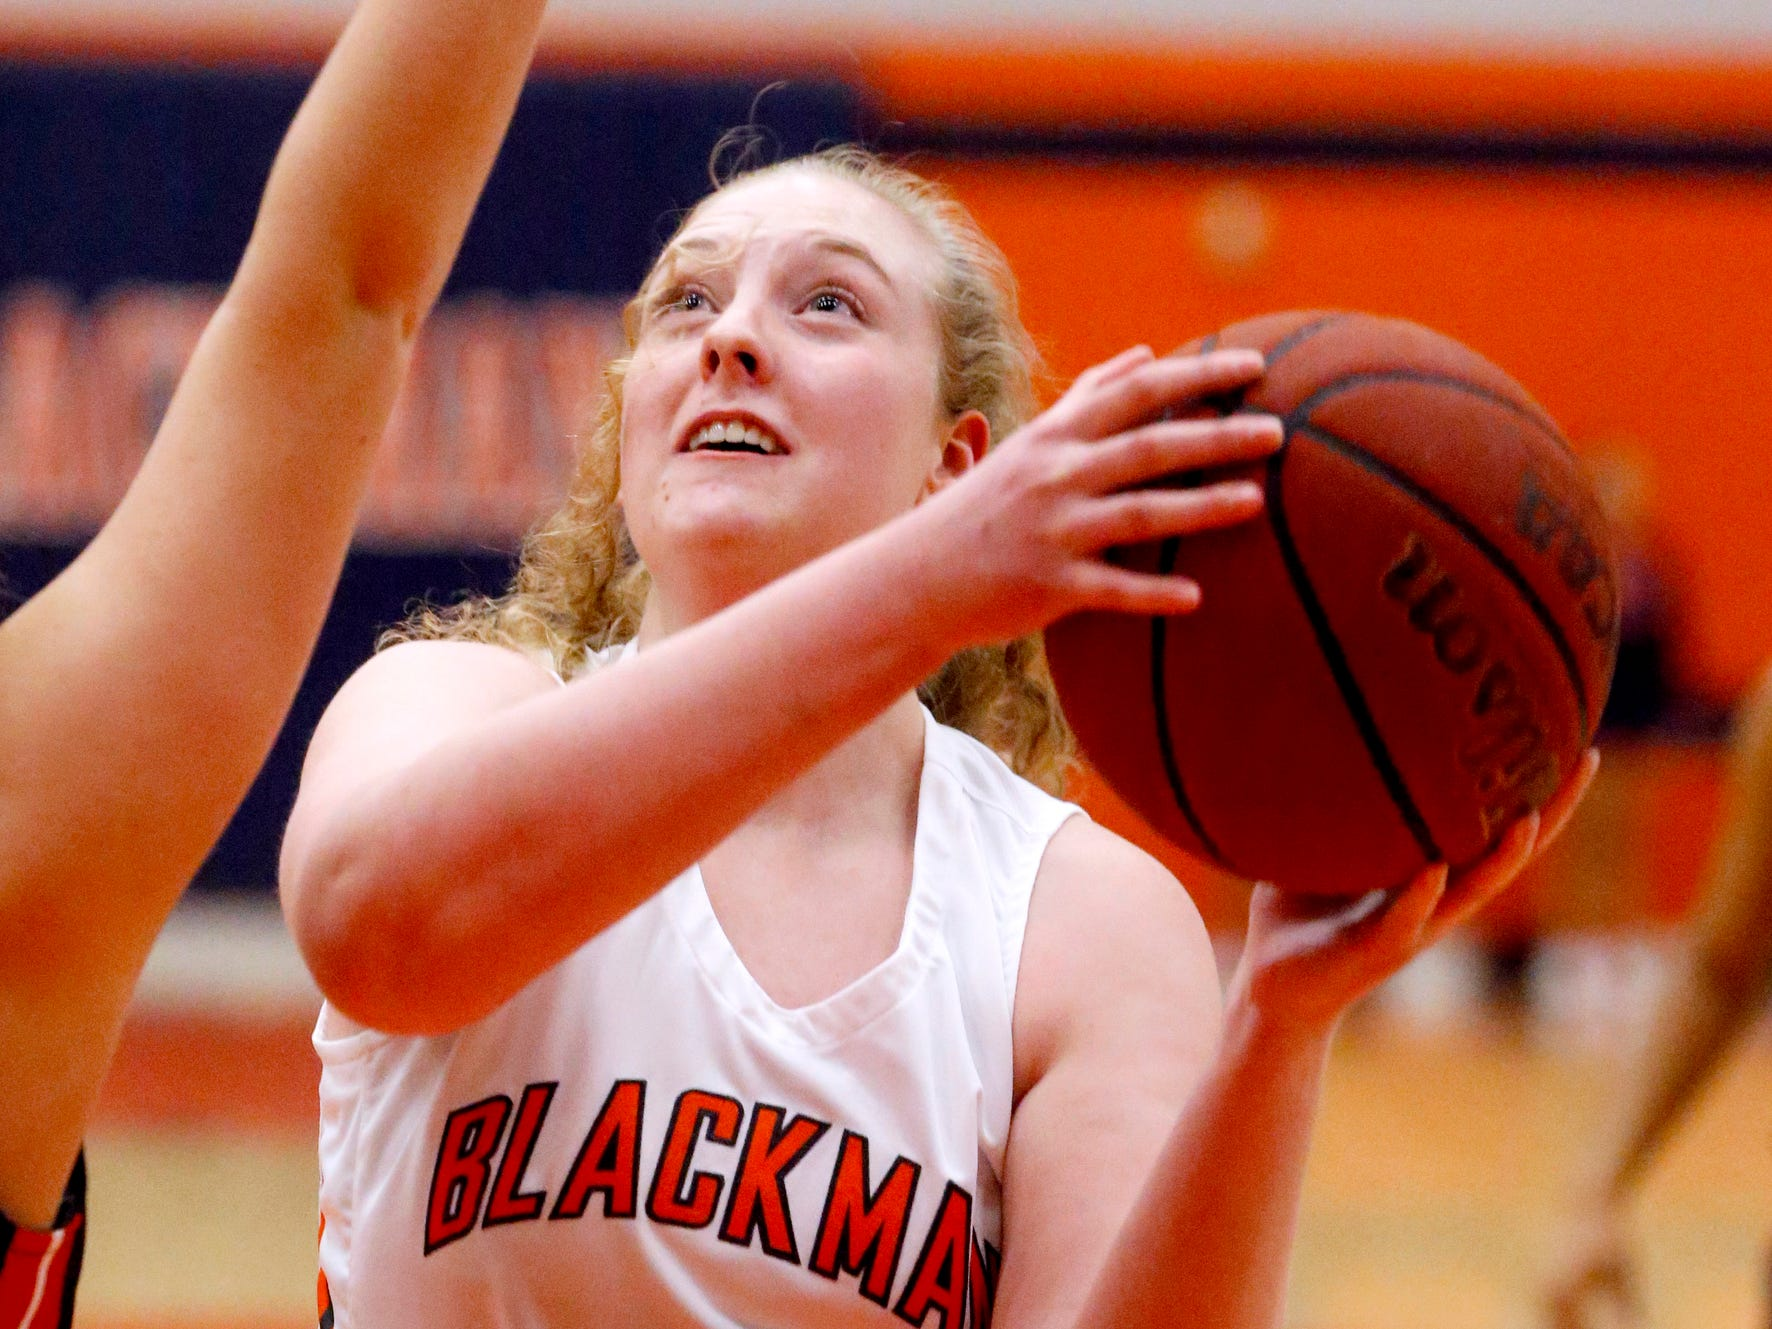 Blackman's Bri Hay (5) goes up for a shot during the game against Oakland on Friday, Feb. 8, 2019.